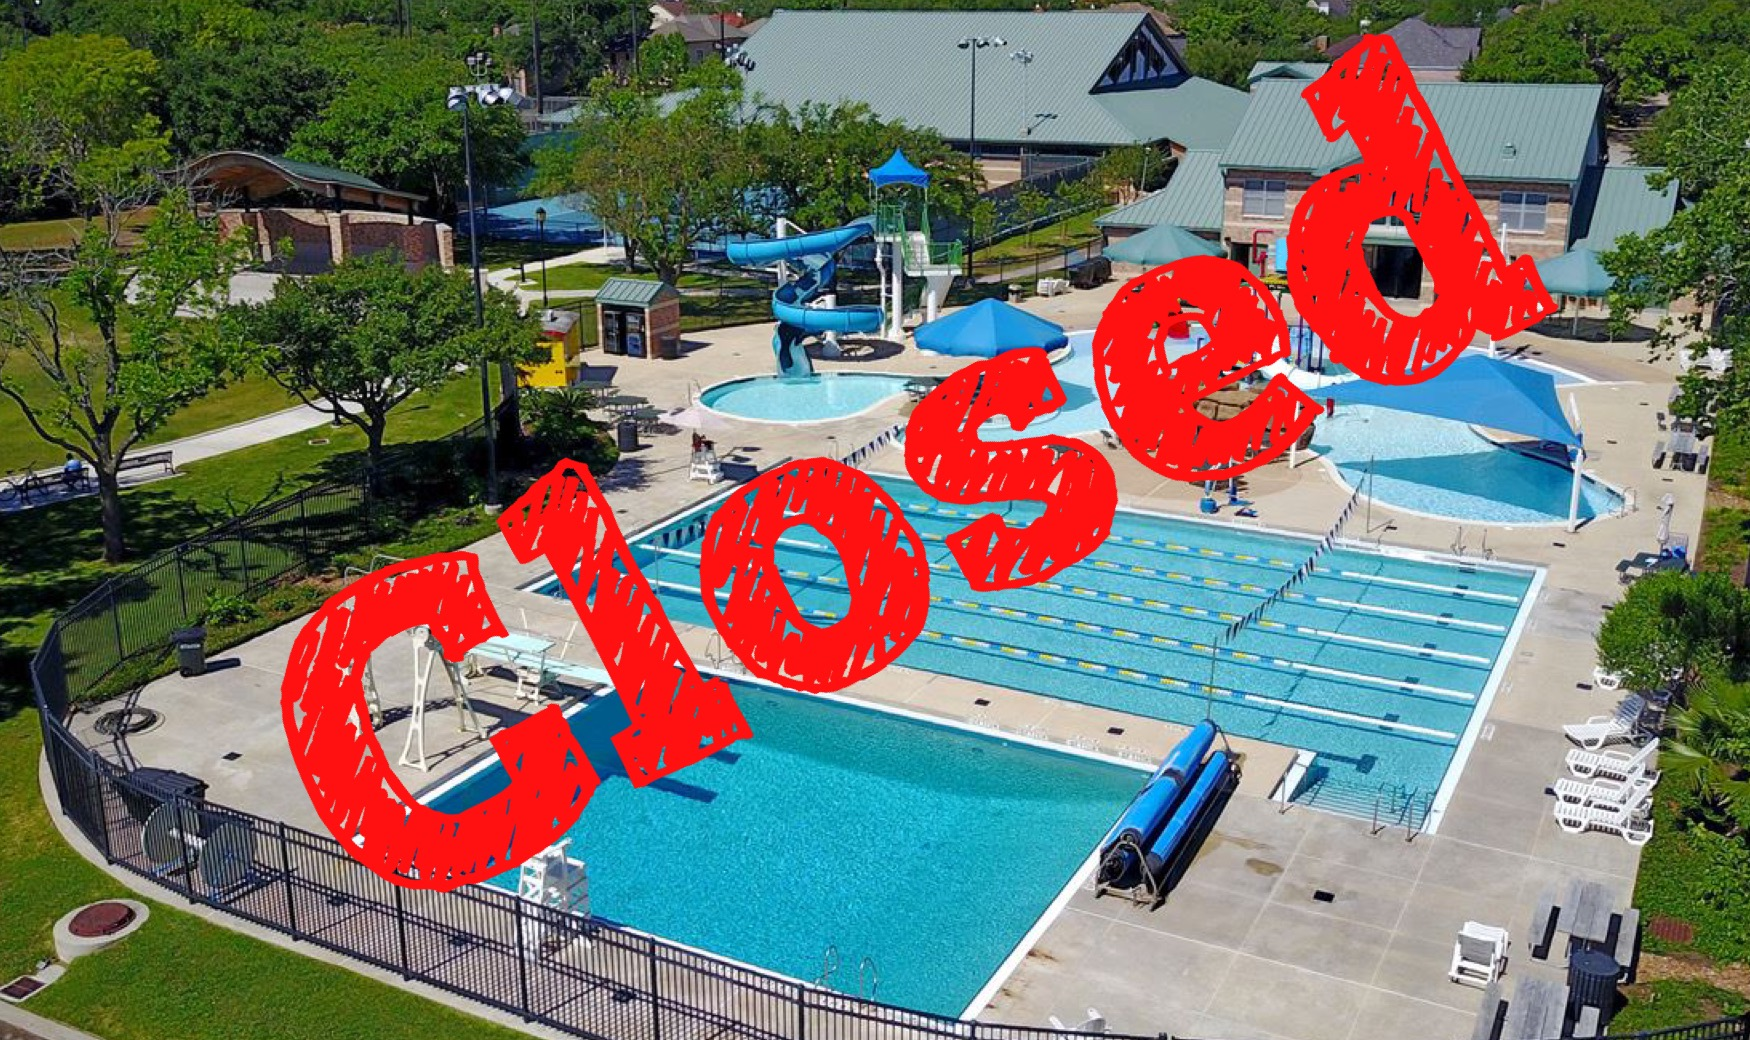 Bellaire closes pools after 3 employees test positive for COVID-19